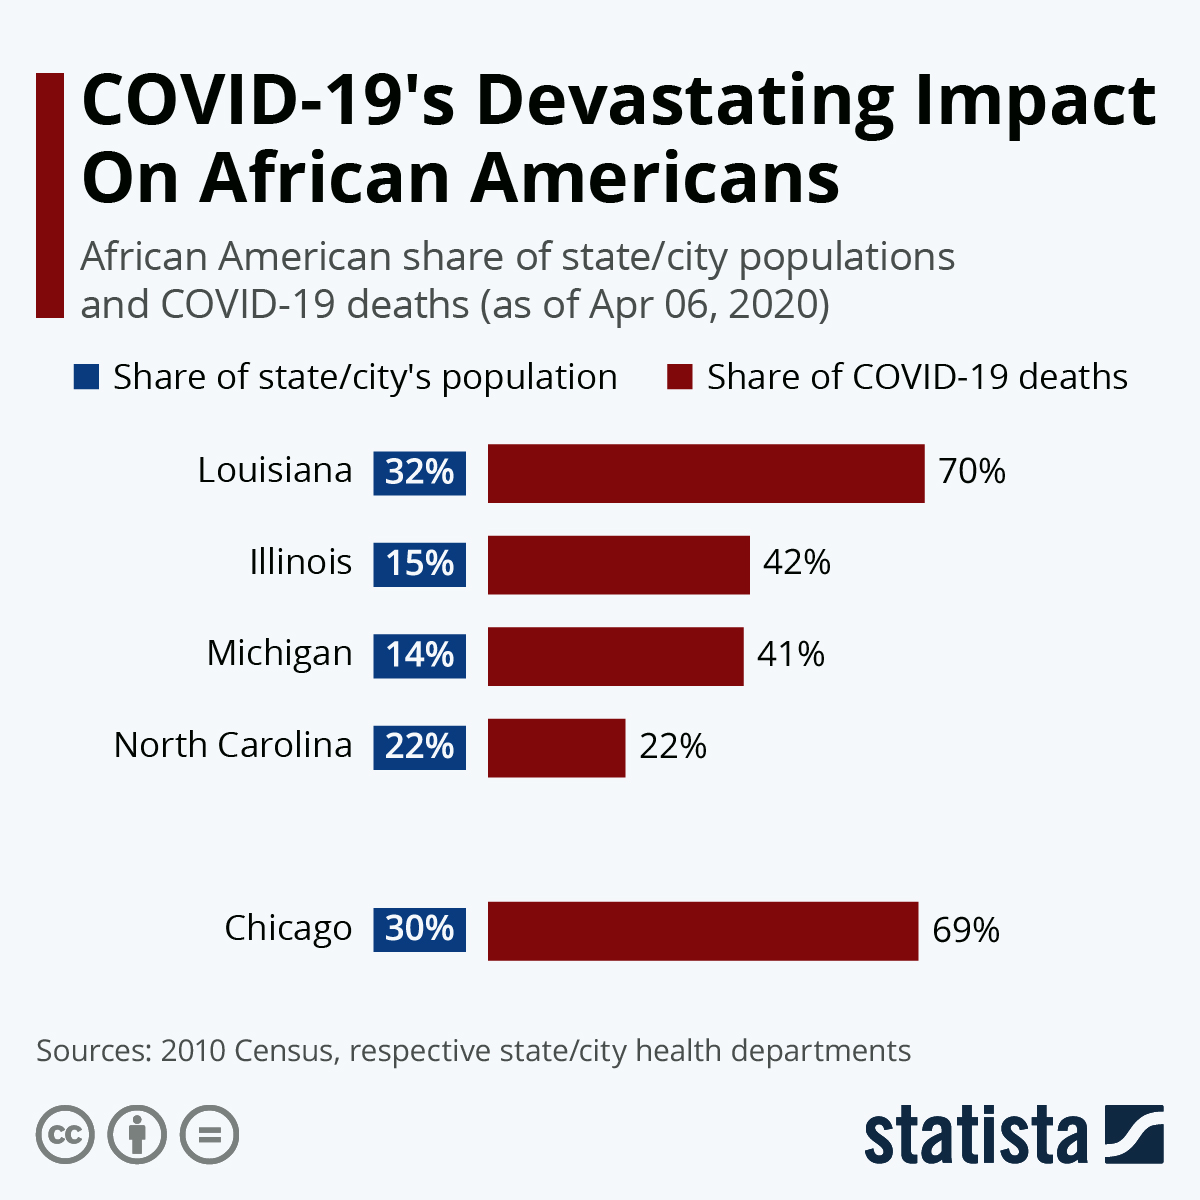 'COVID-19's Devastating Impact On African Americans.' African American share of state/city populations and COVID-19 deaths (as of Apr 06, 2020). Maroon bar chart shows data for 4 states and Chicago. Blue labels list Black percentage of total population in state/ctiy.